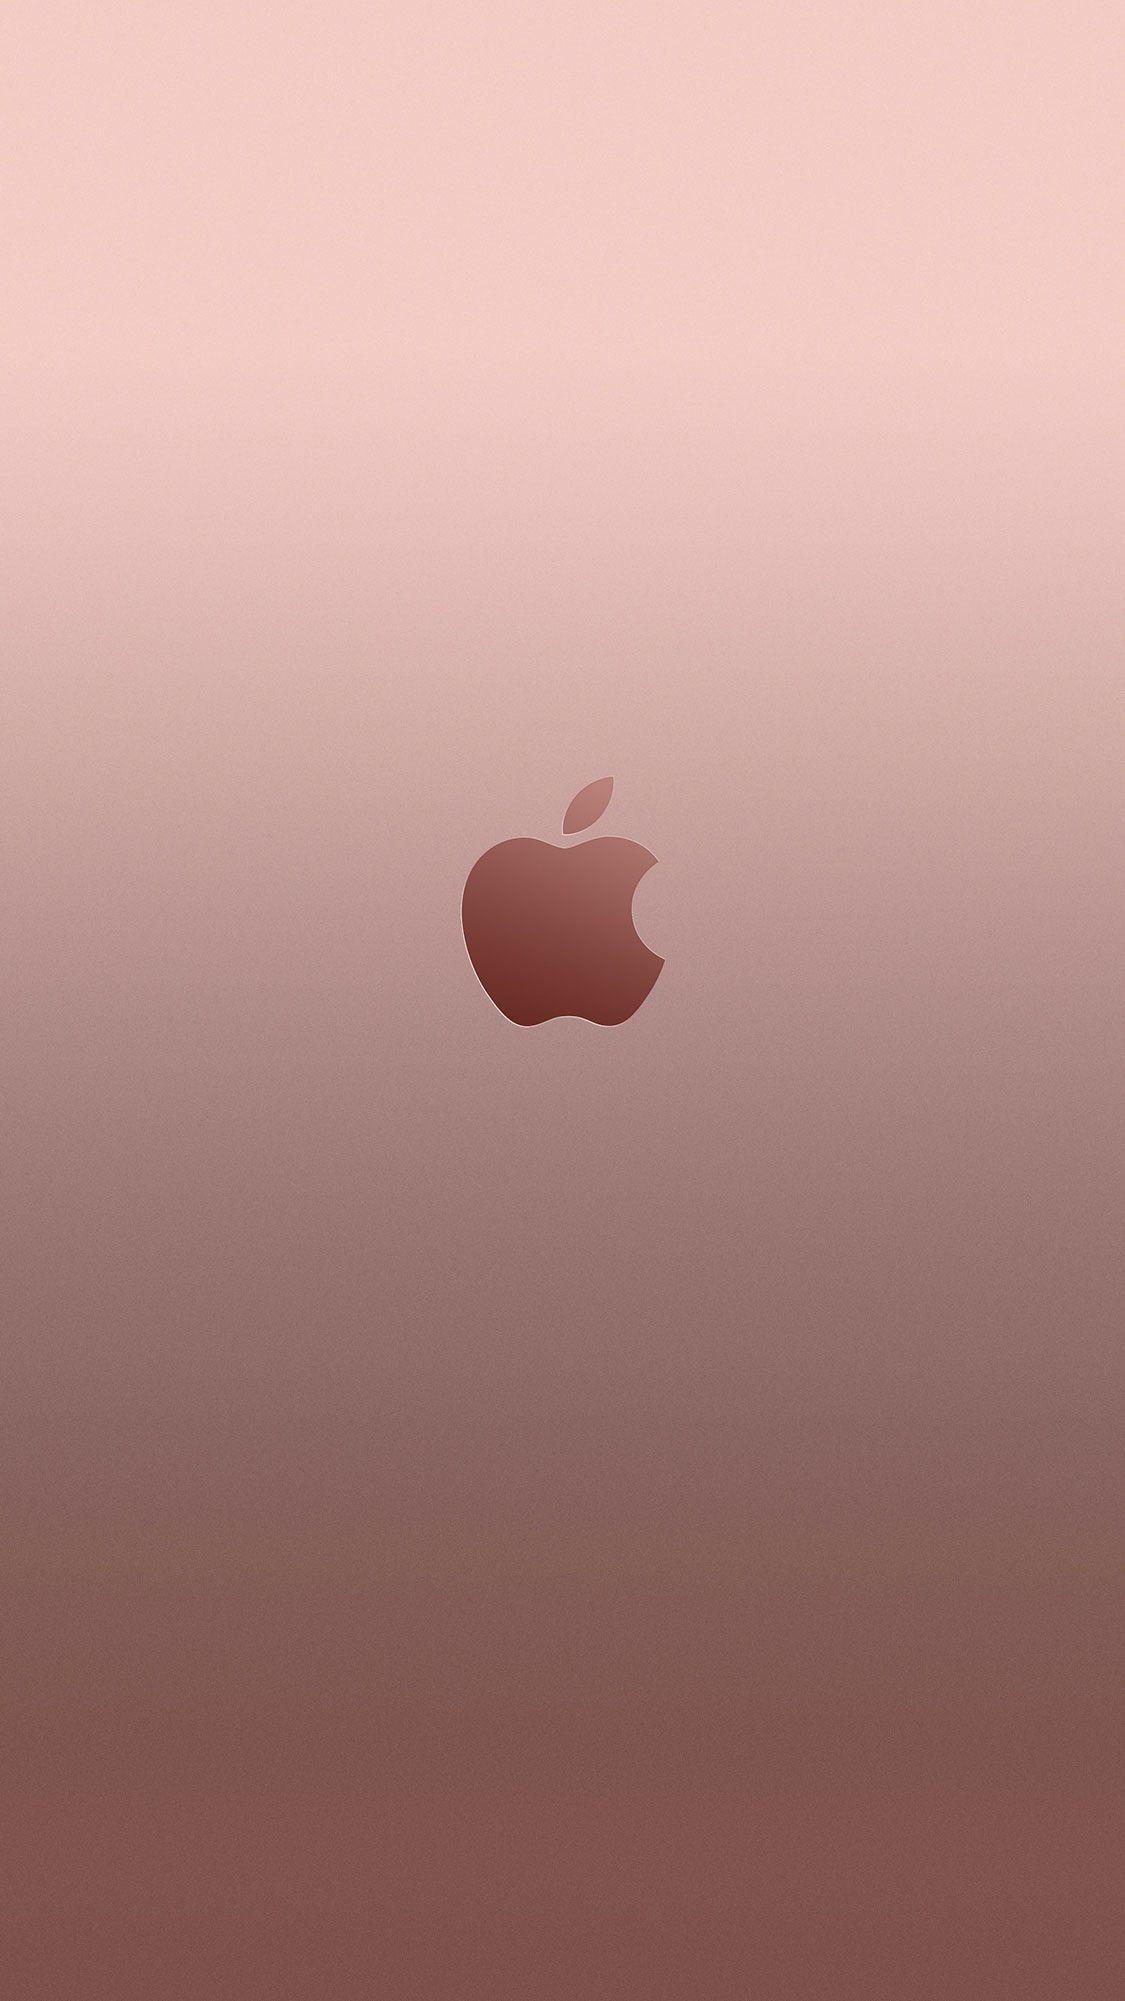 Rose Gold Iphone Wallpapers Top Free Rose Gold Iphone Backgrounds Wallpaperaccess